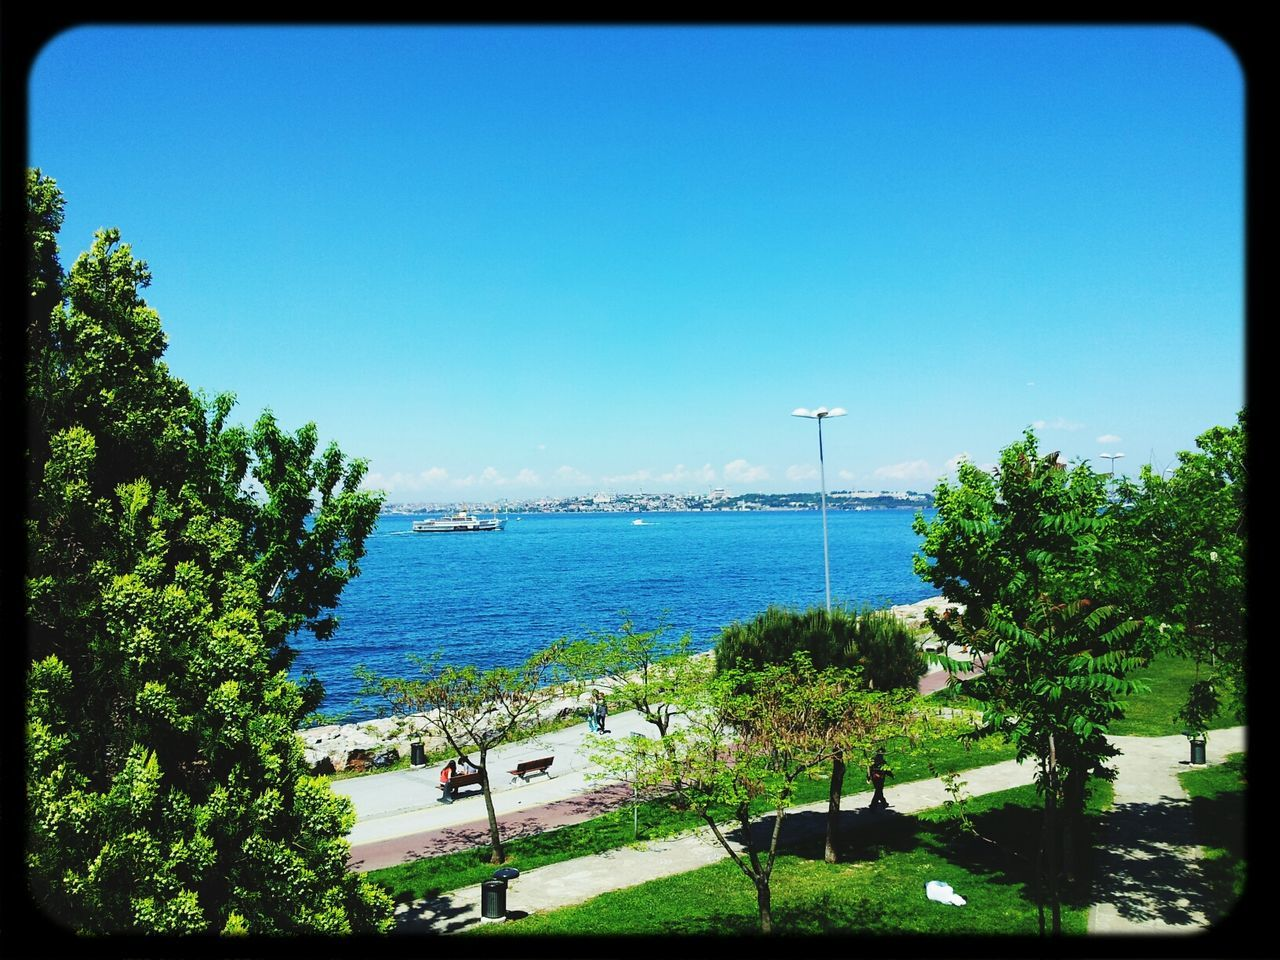 sea, water, tree, nature, clear sky, blue, day, summer, outdoors, no people, beach, beauty in nature, scenics, architecture, sky